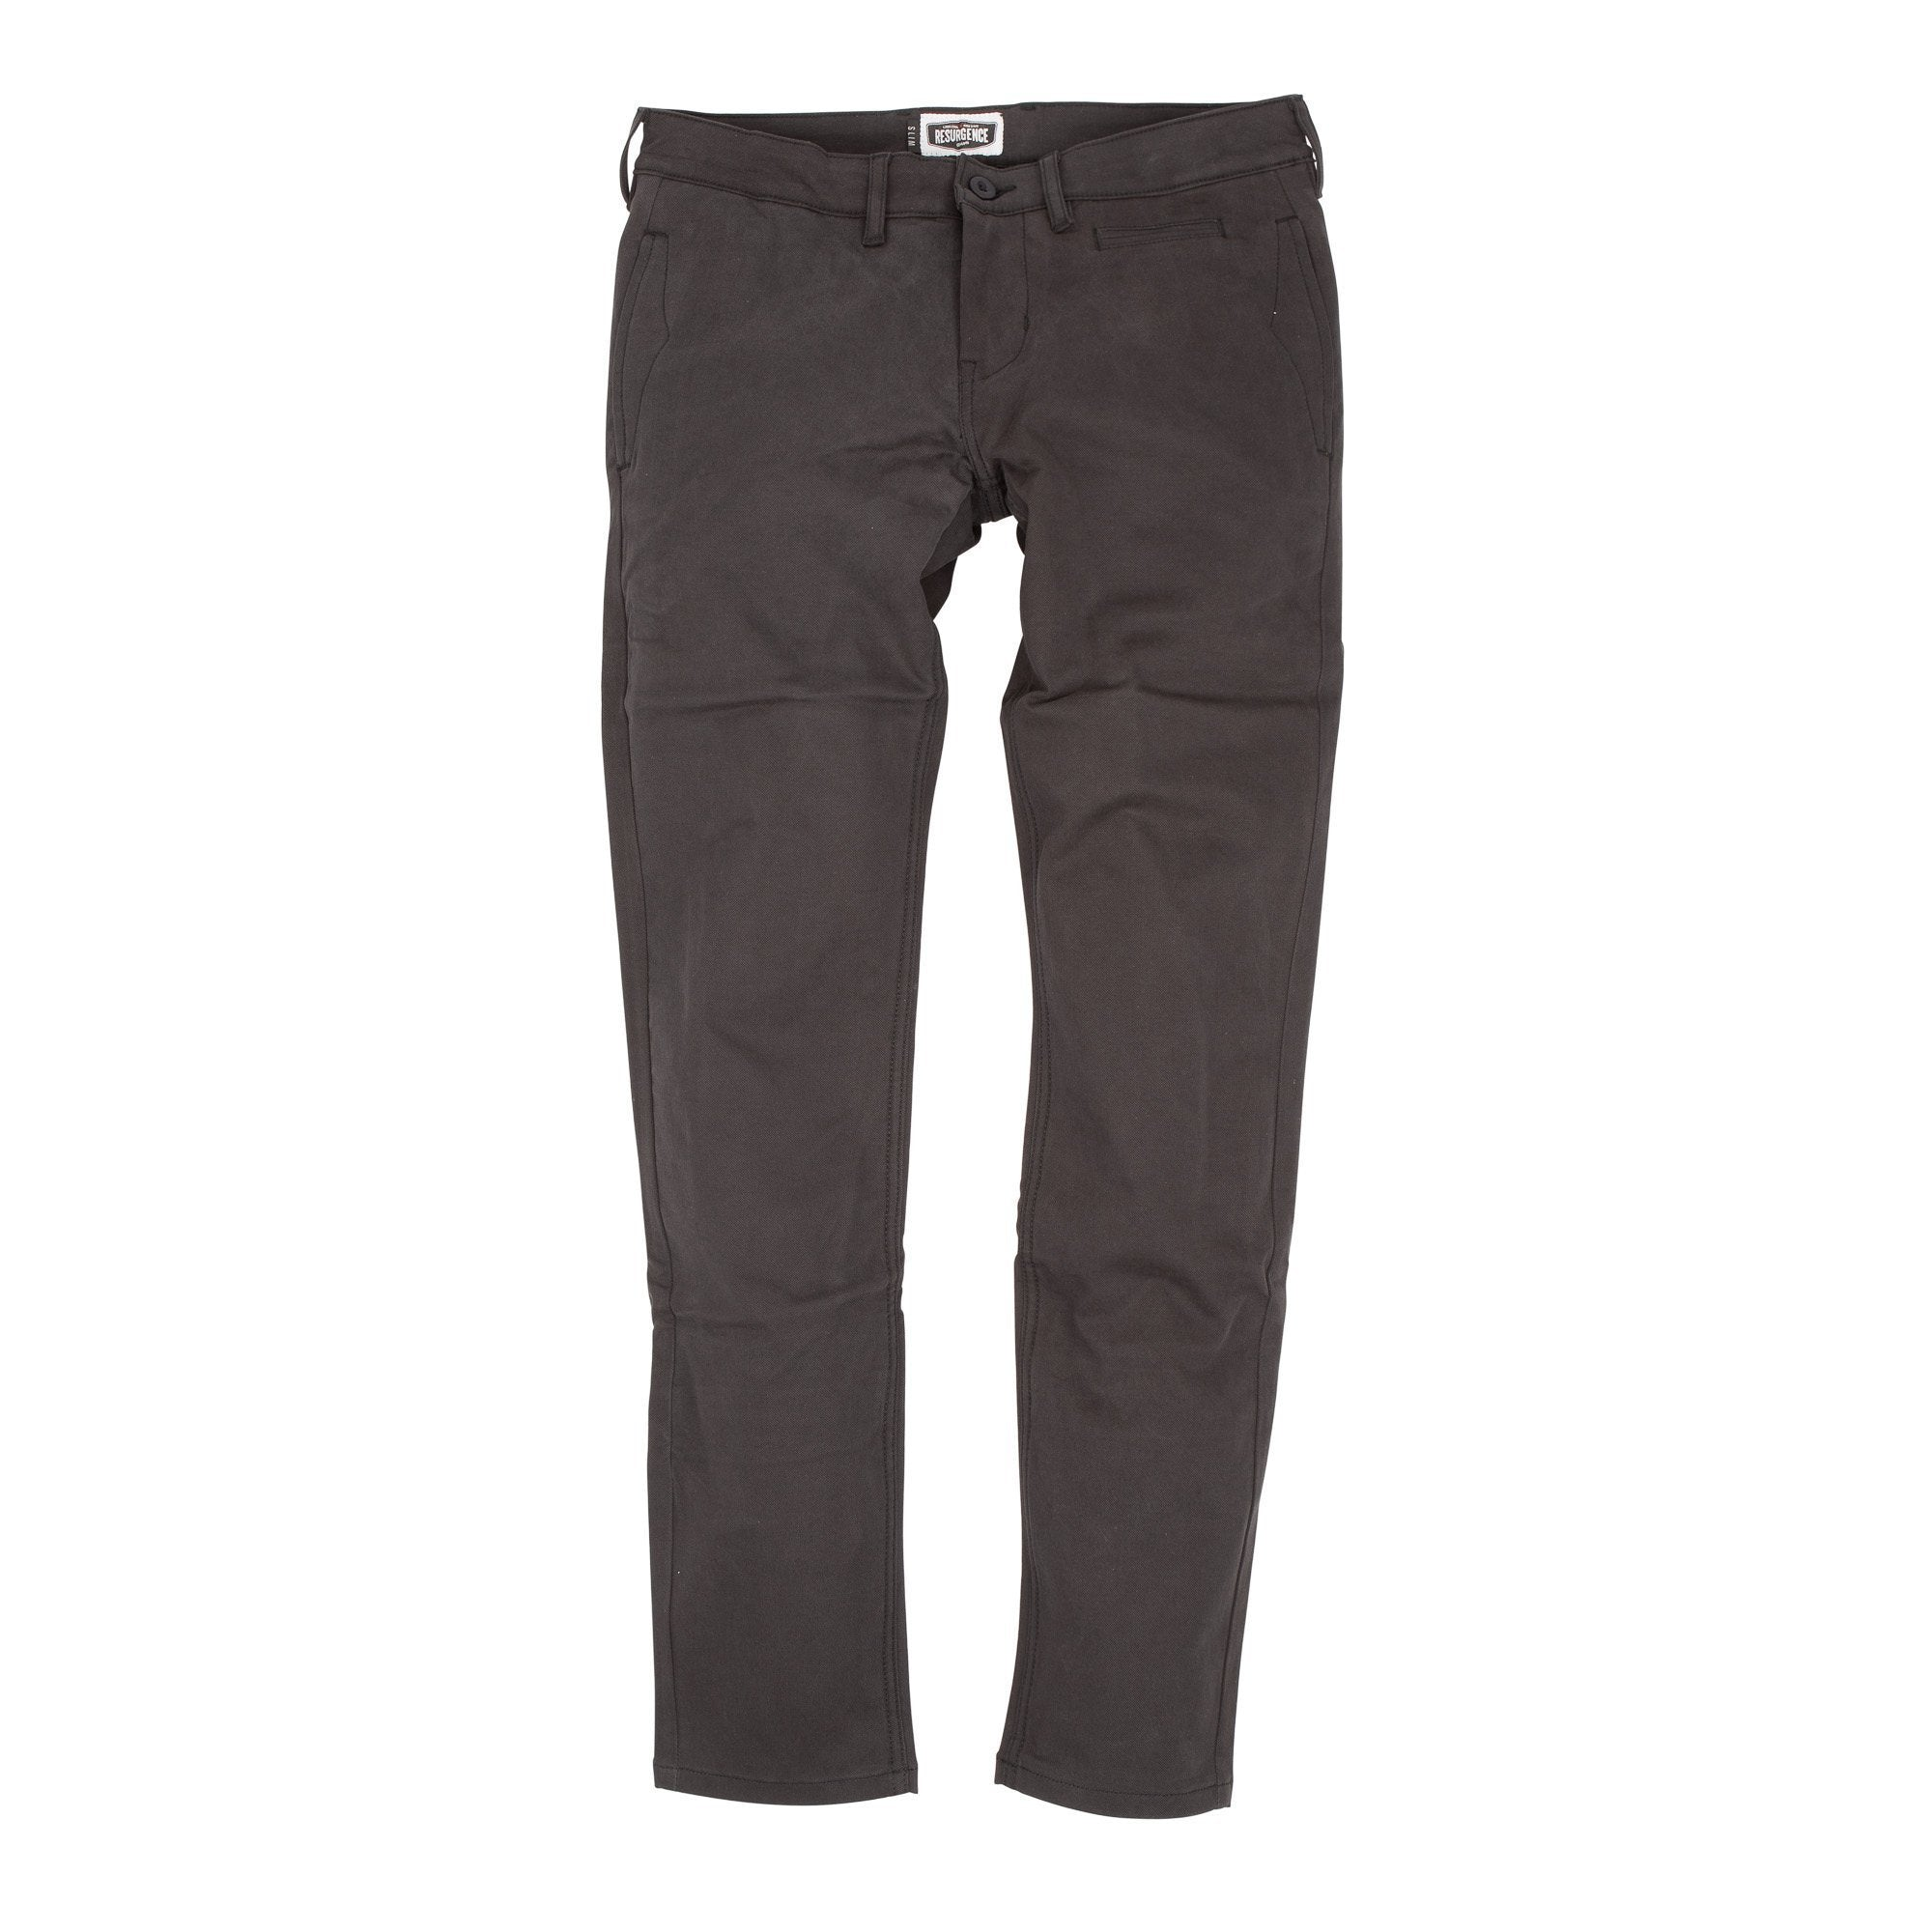 Resurgence Gear Inc. - Resurgence Gear® 2020 City Chino PEKEV Motorcycle Trousers - Black - Men's Trousers - Salt Flats Clothing